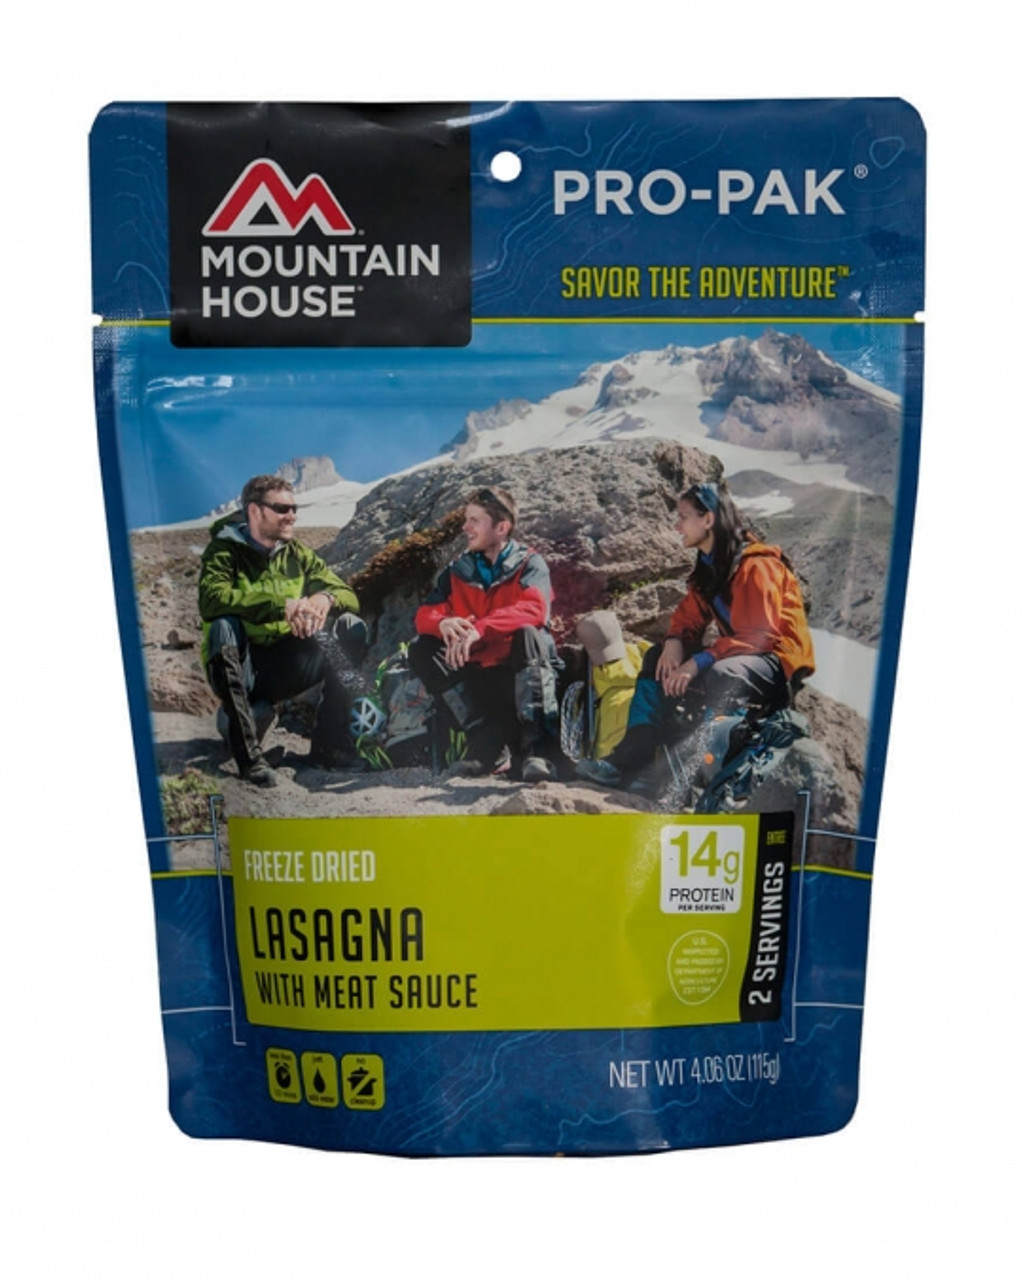 Mountain House Lasagna with Meat Sauce Pro-Pak Pouch